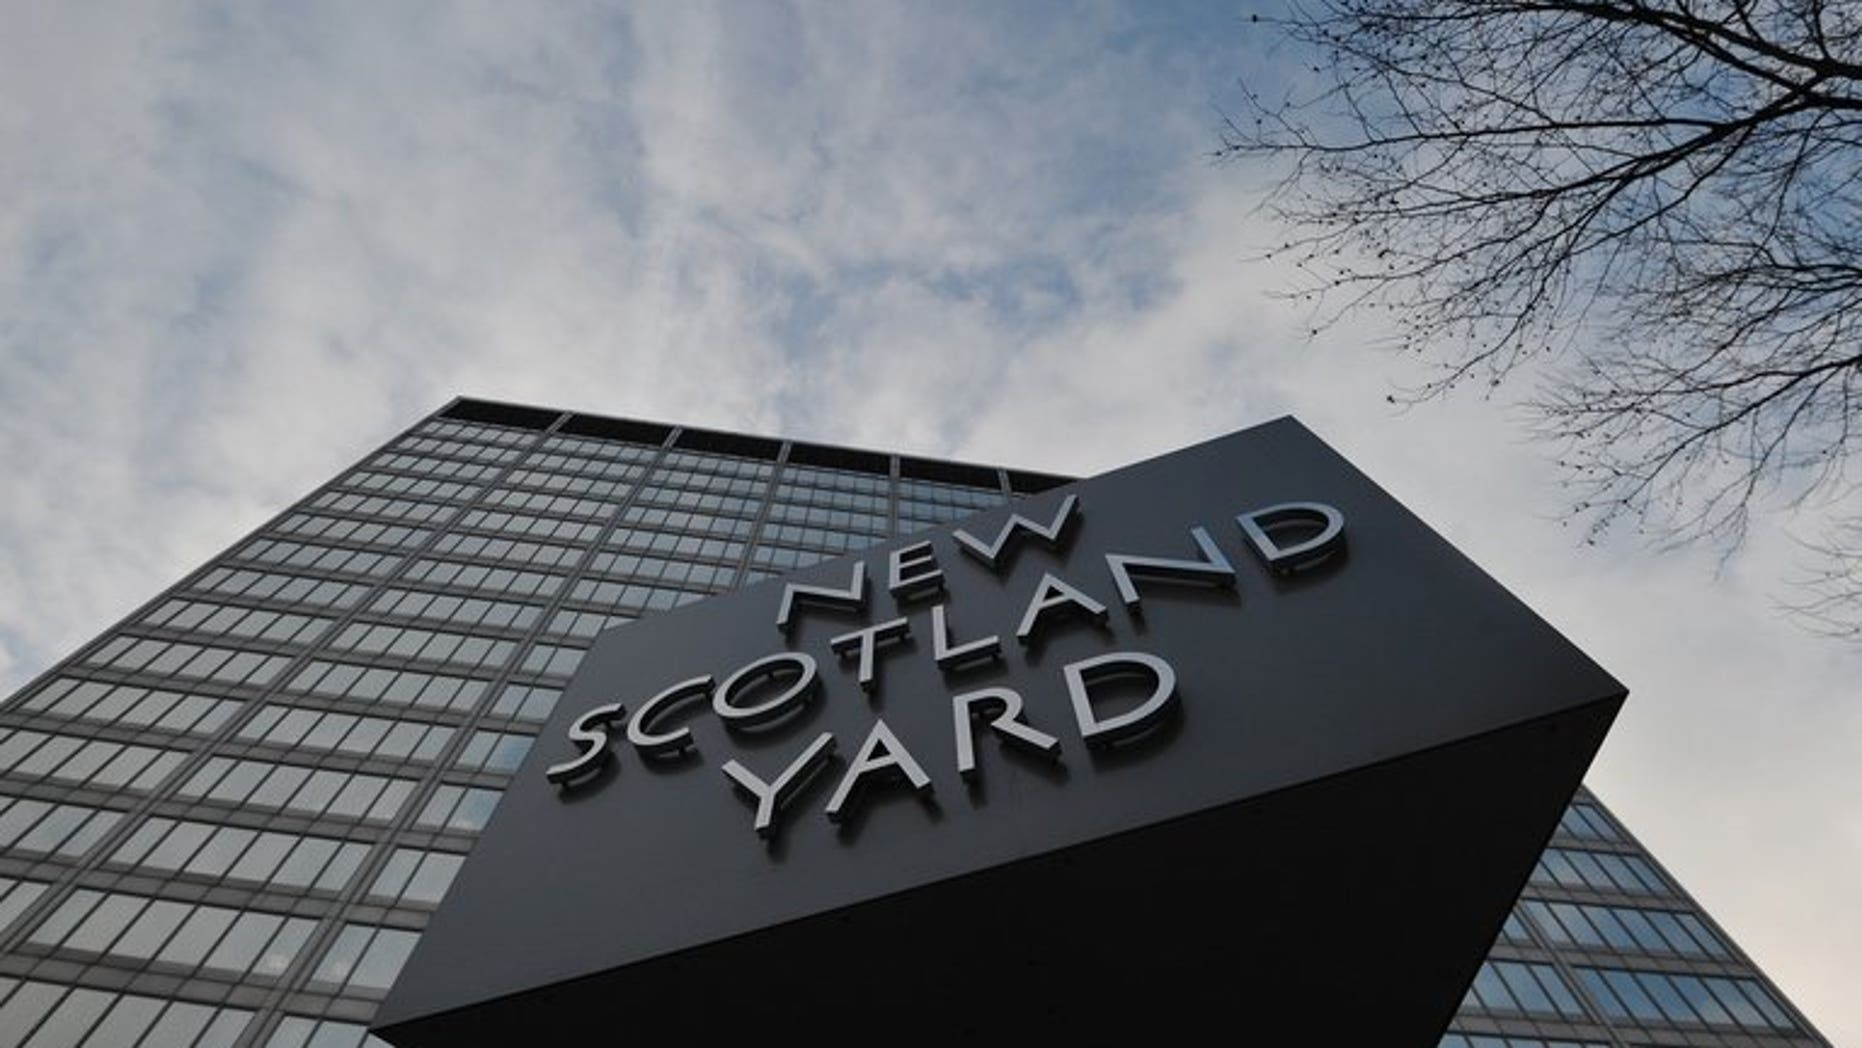 London's Metropolitan Police headquarters, pictured on January 11, 2013. Police have arrested two more people over alleged involvement in terrorism in Syria following the discovery of ammunition at the port of Dover.